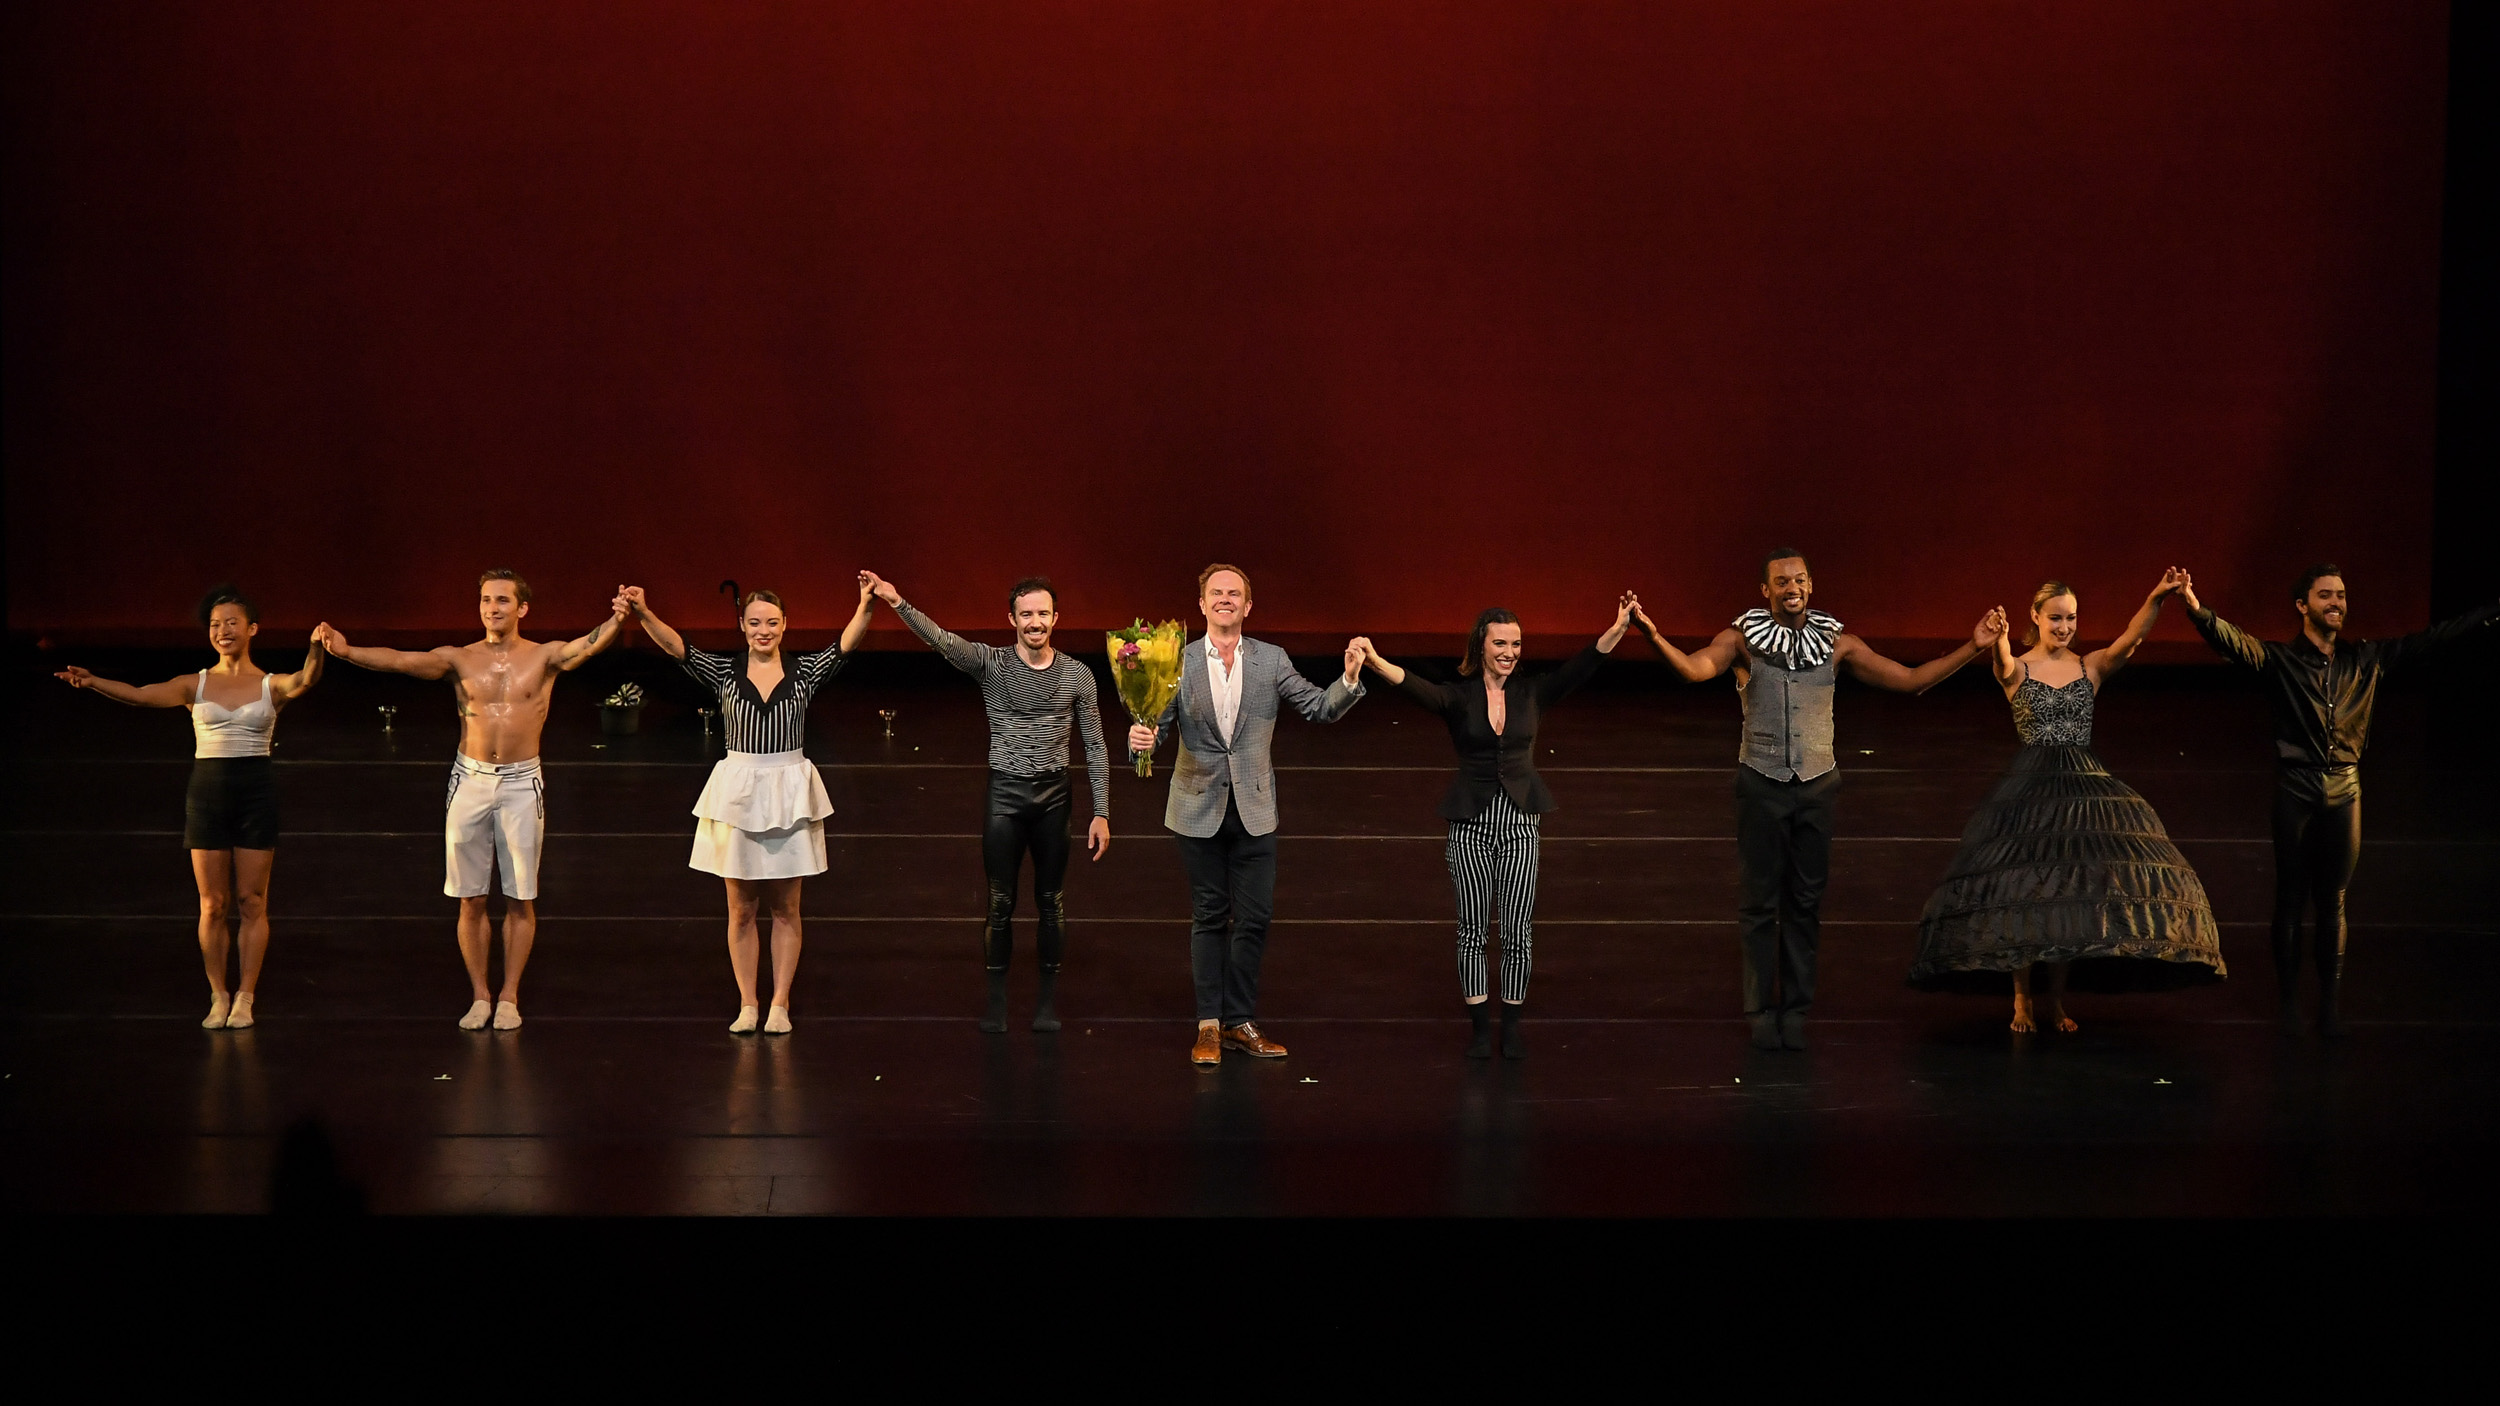 BODYTRAFFIC performing at the Wallis Annenberg Center for the Performing Arts May 31, 2018. A Million Voices (World Premiere). Choreography: Matthew Neenan. (l-r) Jessica Liu, Lorrin Brubaker, Haley Heckethorn, Guzmán Rosado, choreographer Matthew Neenan, Tina Finkelman Berkett, Jamal White, Natalie Leibert, Joseph Davis. PHOTO CREDIT: Rob Latour.